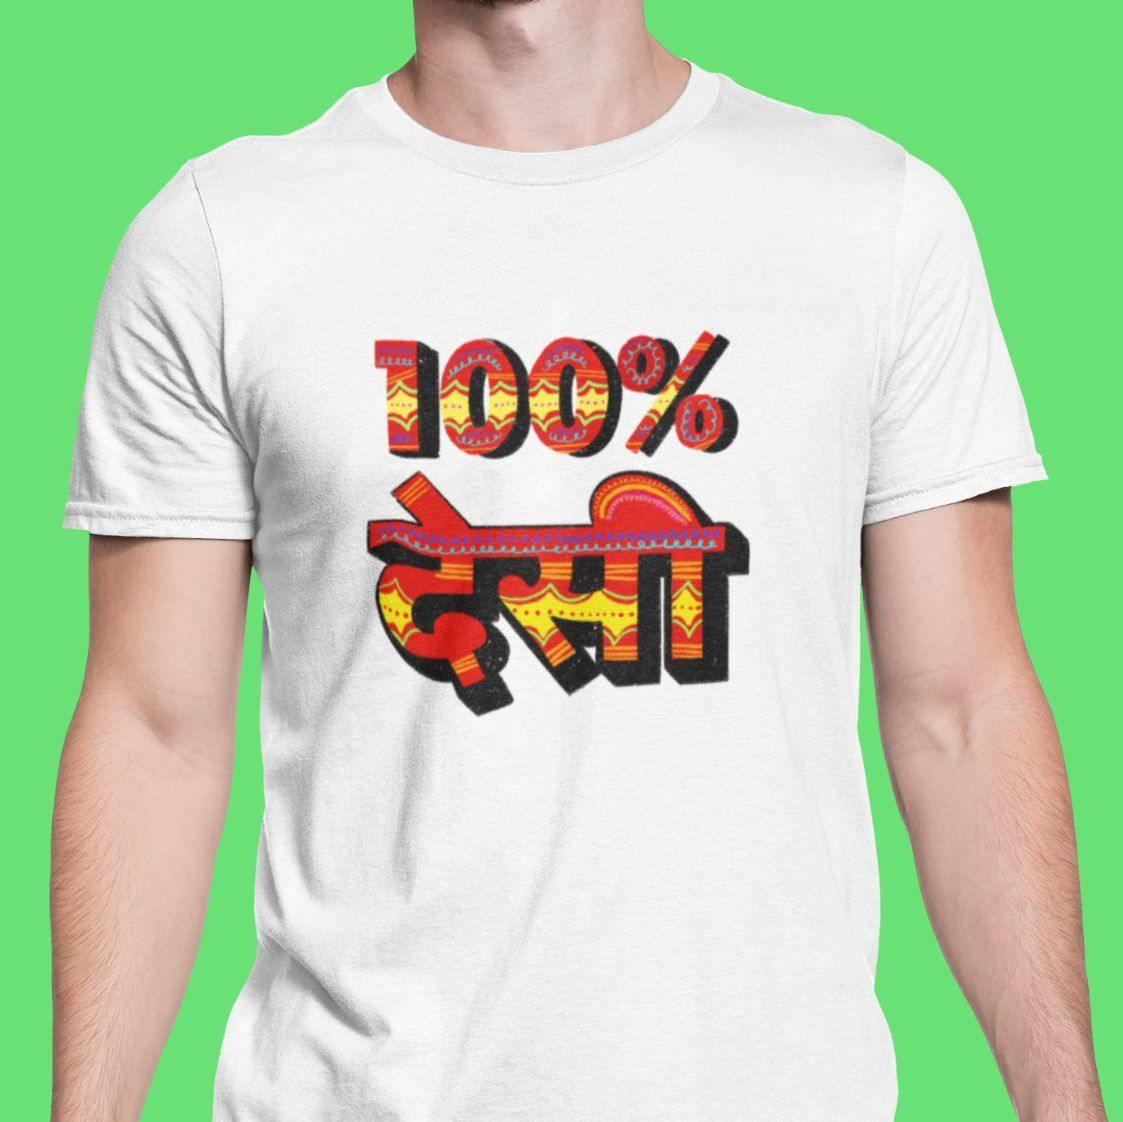 100% Desi - Comfortable Printed Men's Summer Short Sleeve Shirts